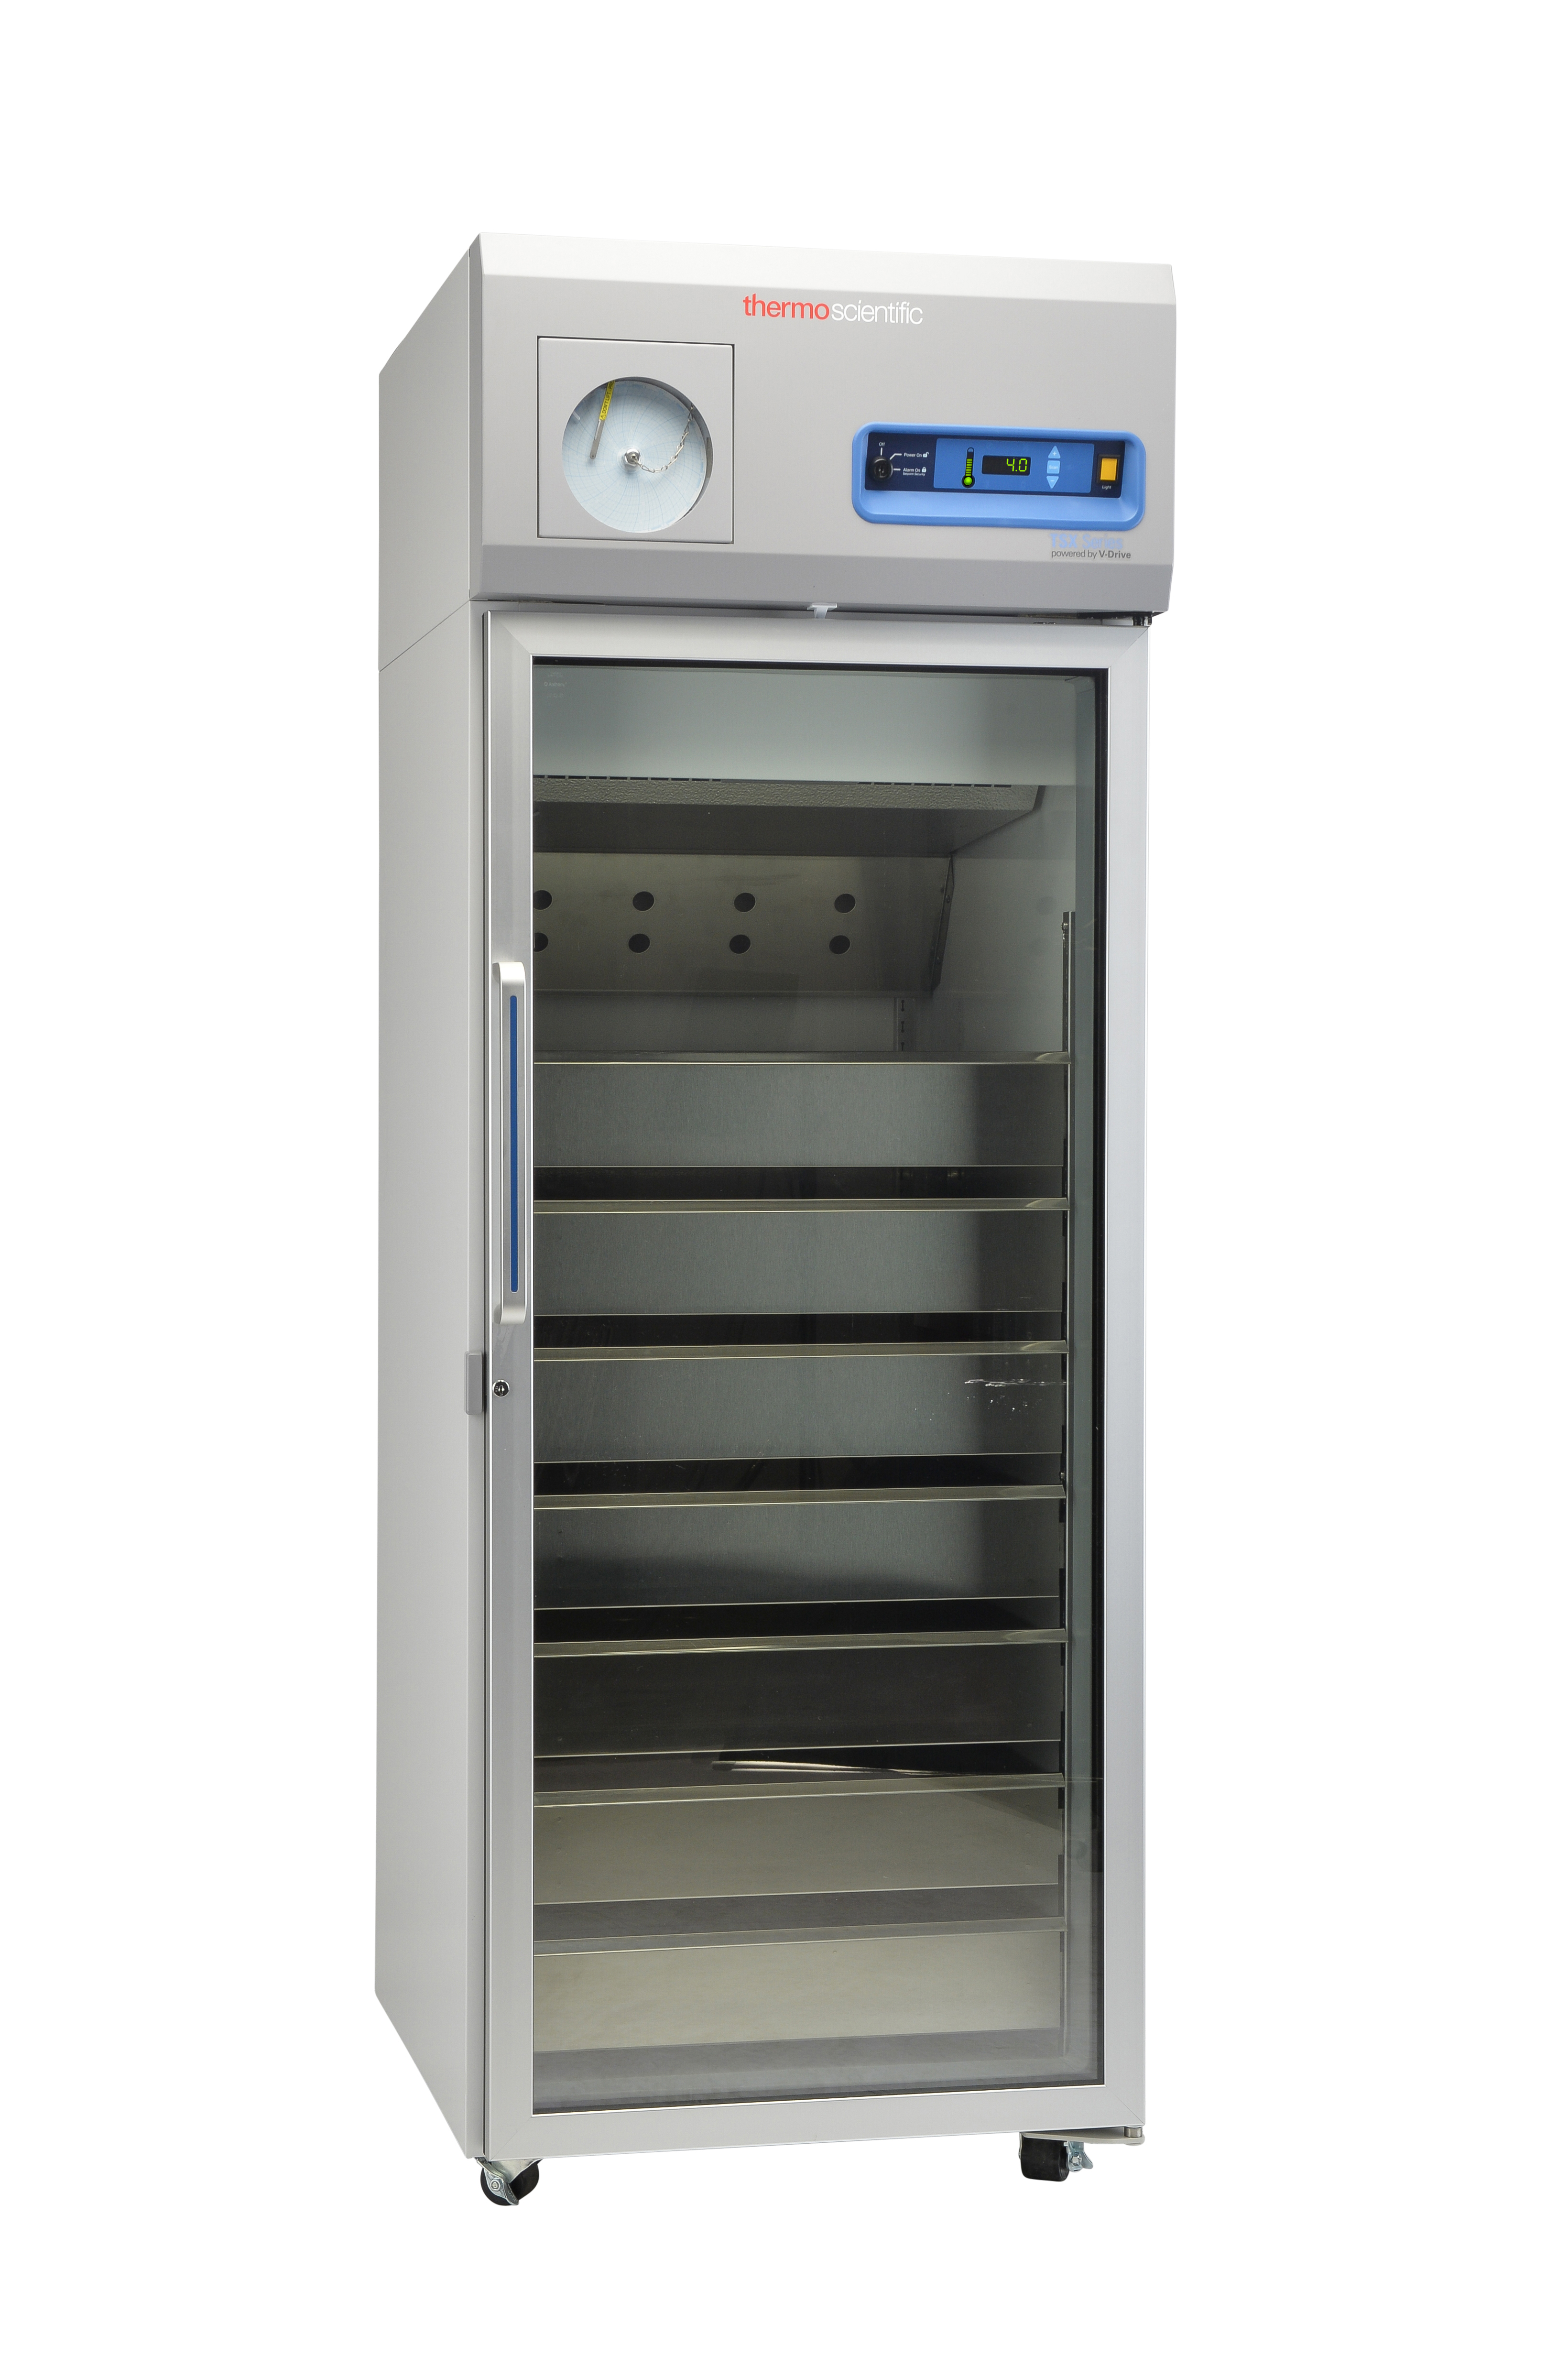 Thermo Scientific TSX Series High Performance Blood Bank Refrigerator, now with ENERGY STAR certification. (Photo: Business Wire)